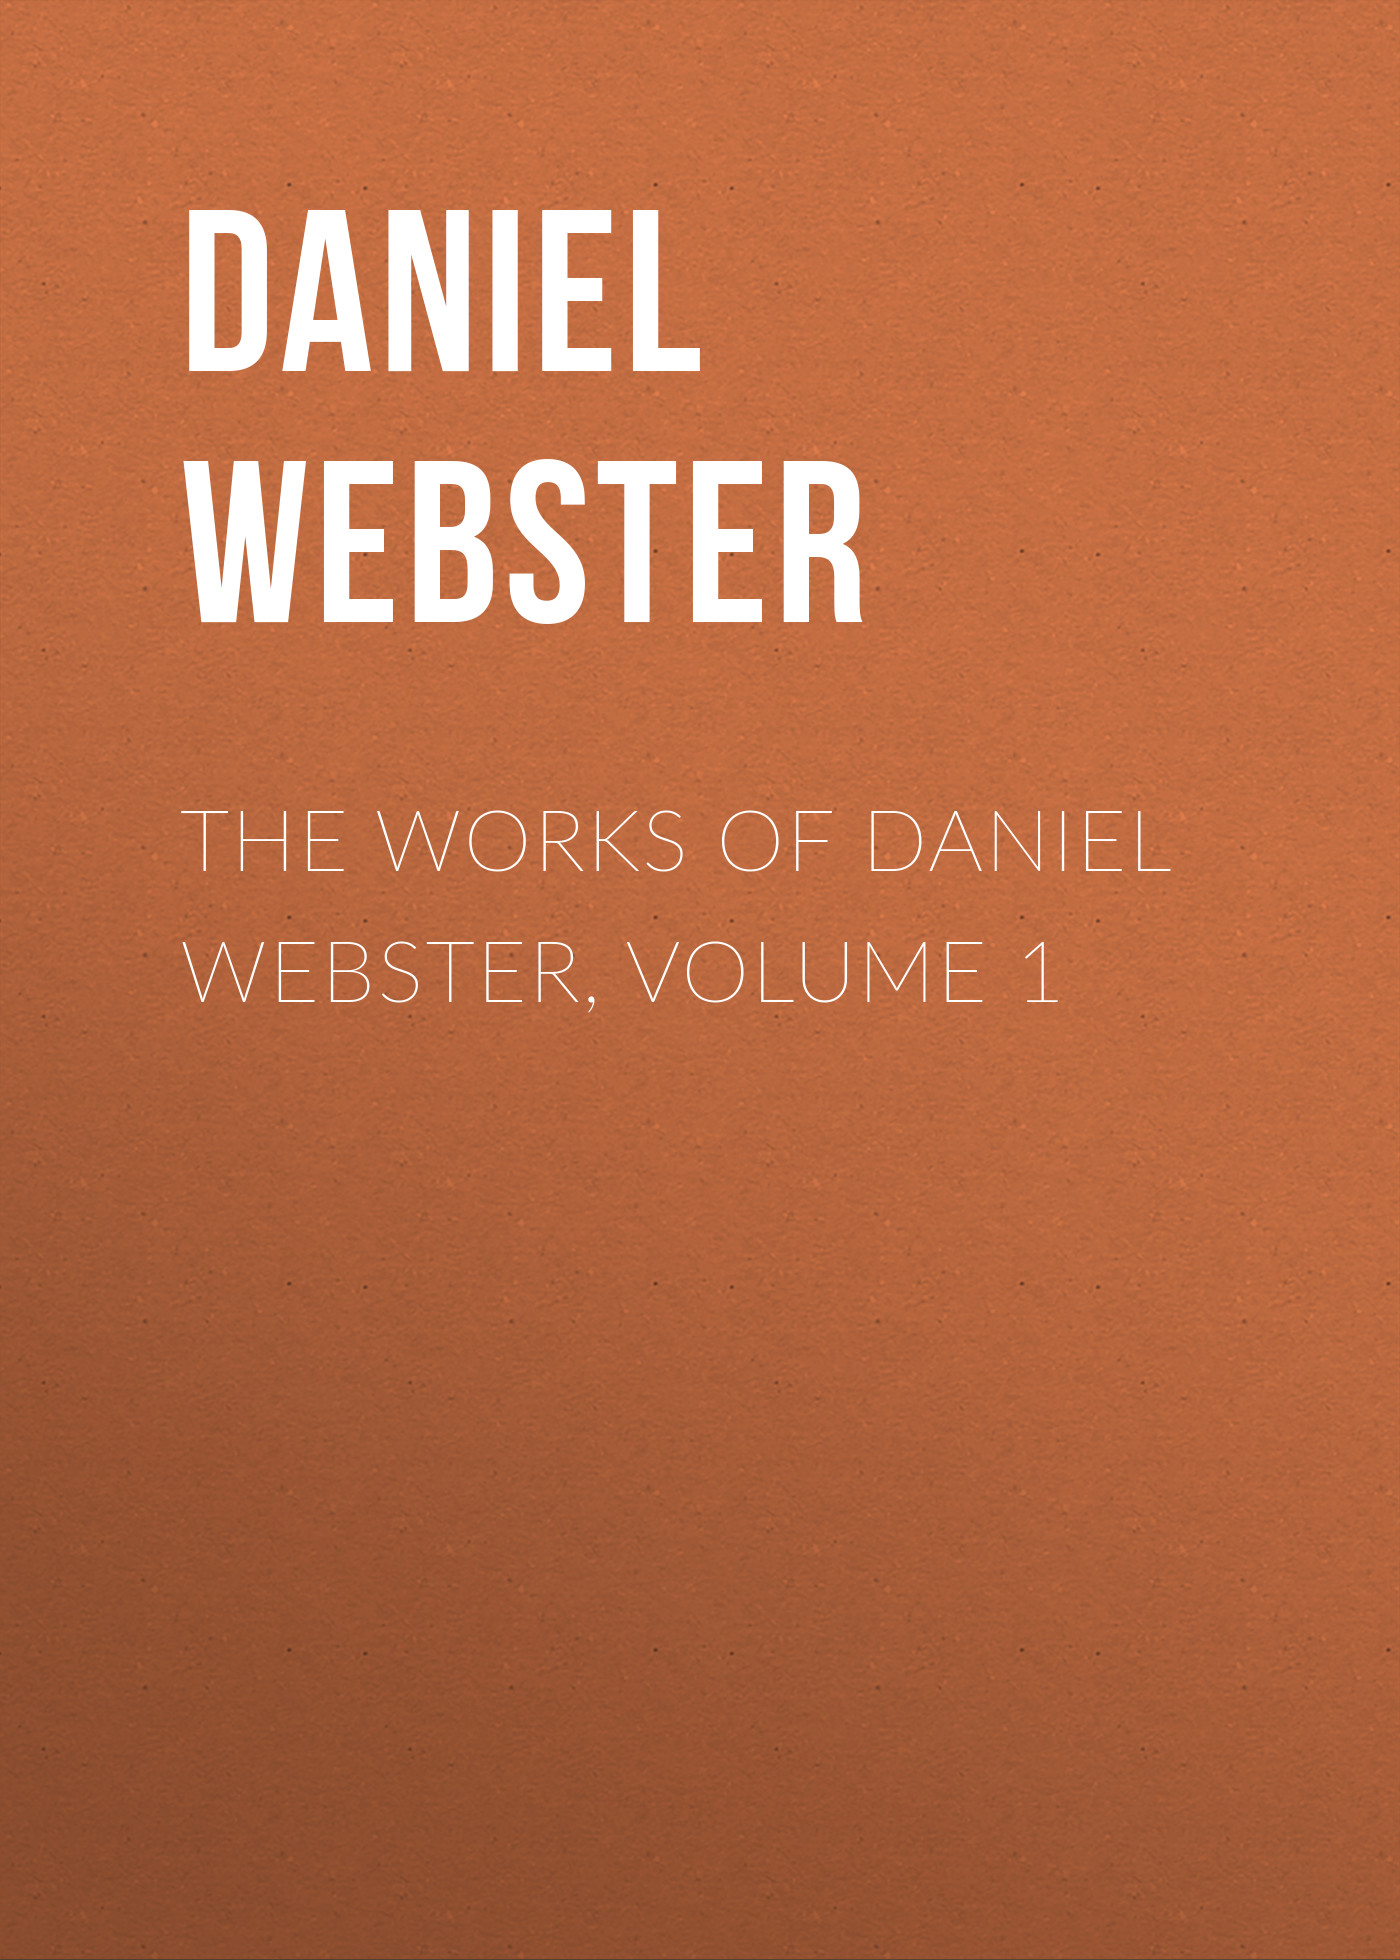 Daniel Webster The Works of Daniel Webster, Volume 1 все цены